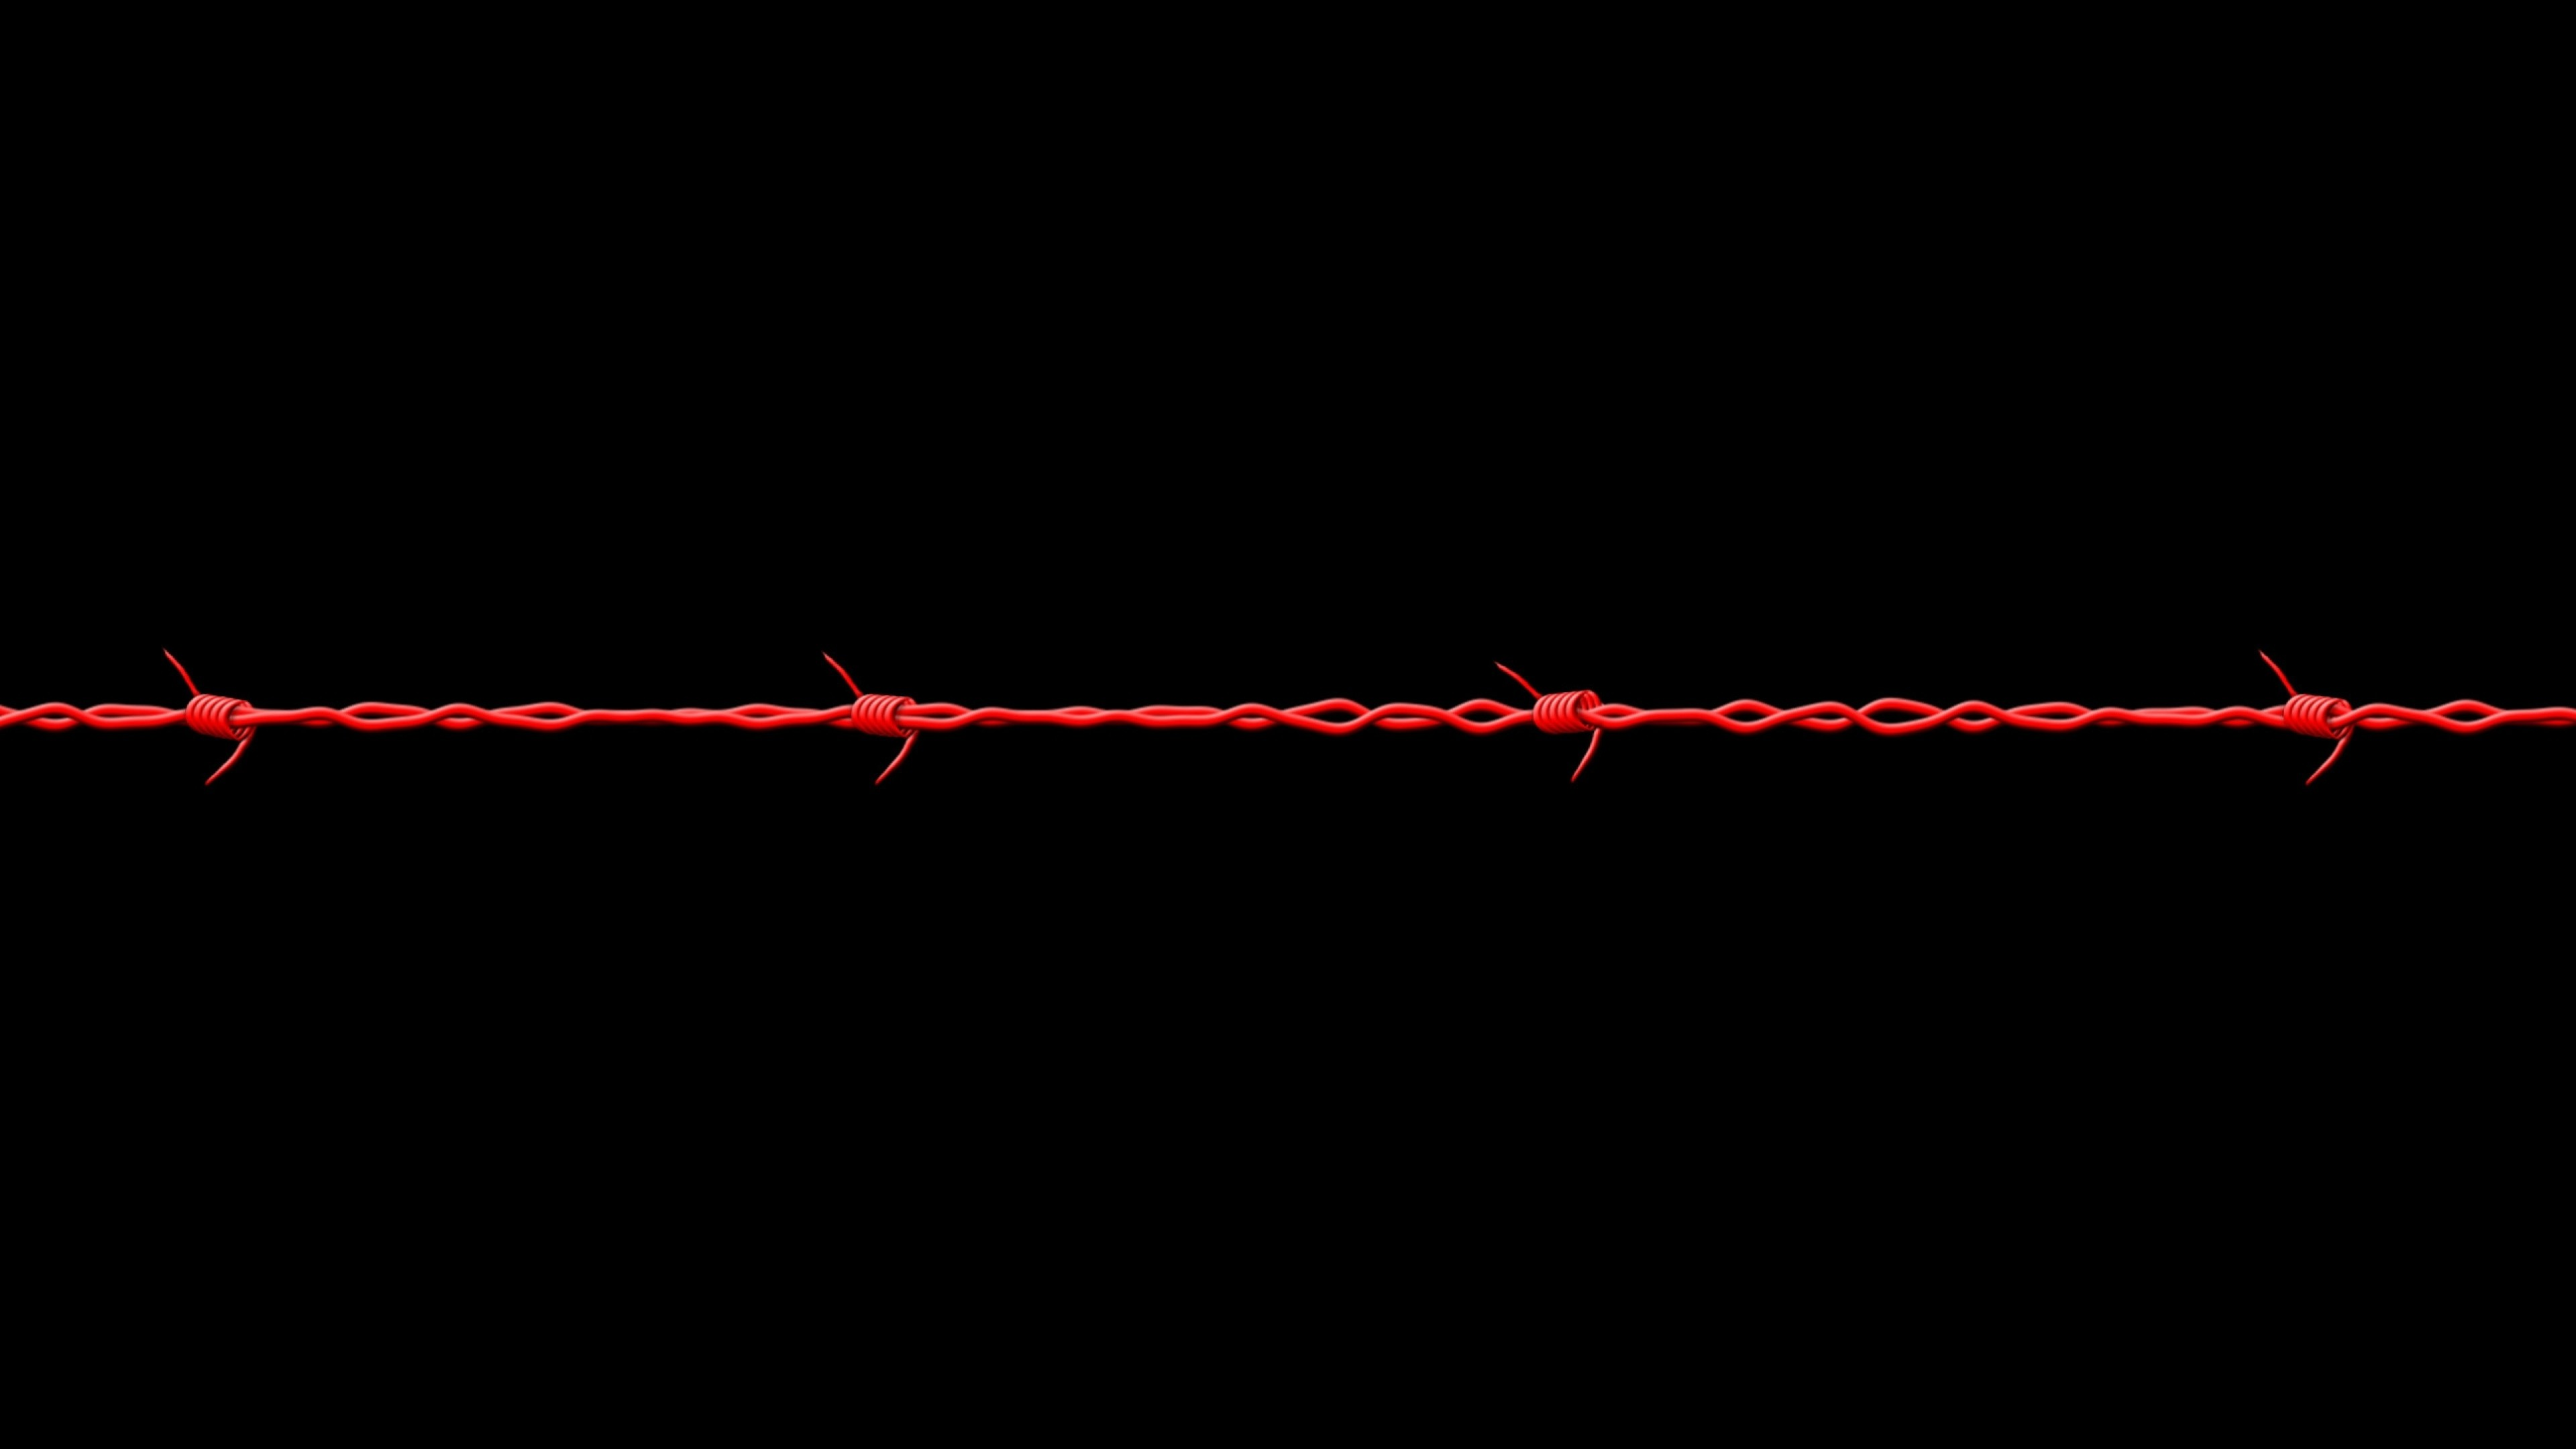 Wallpaper black, barbed wire, red